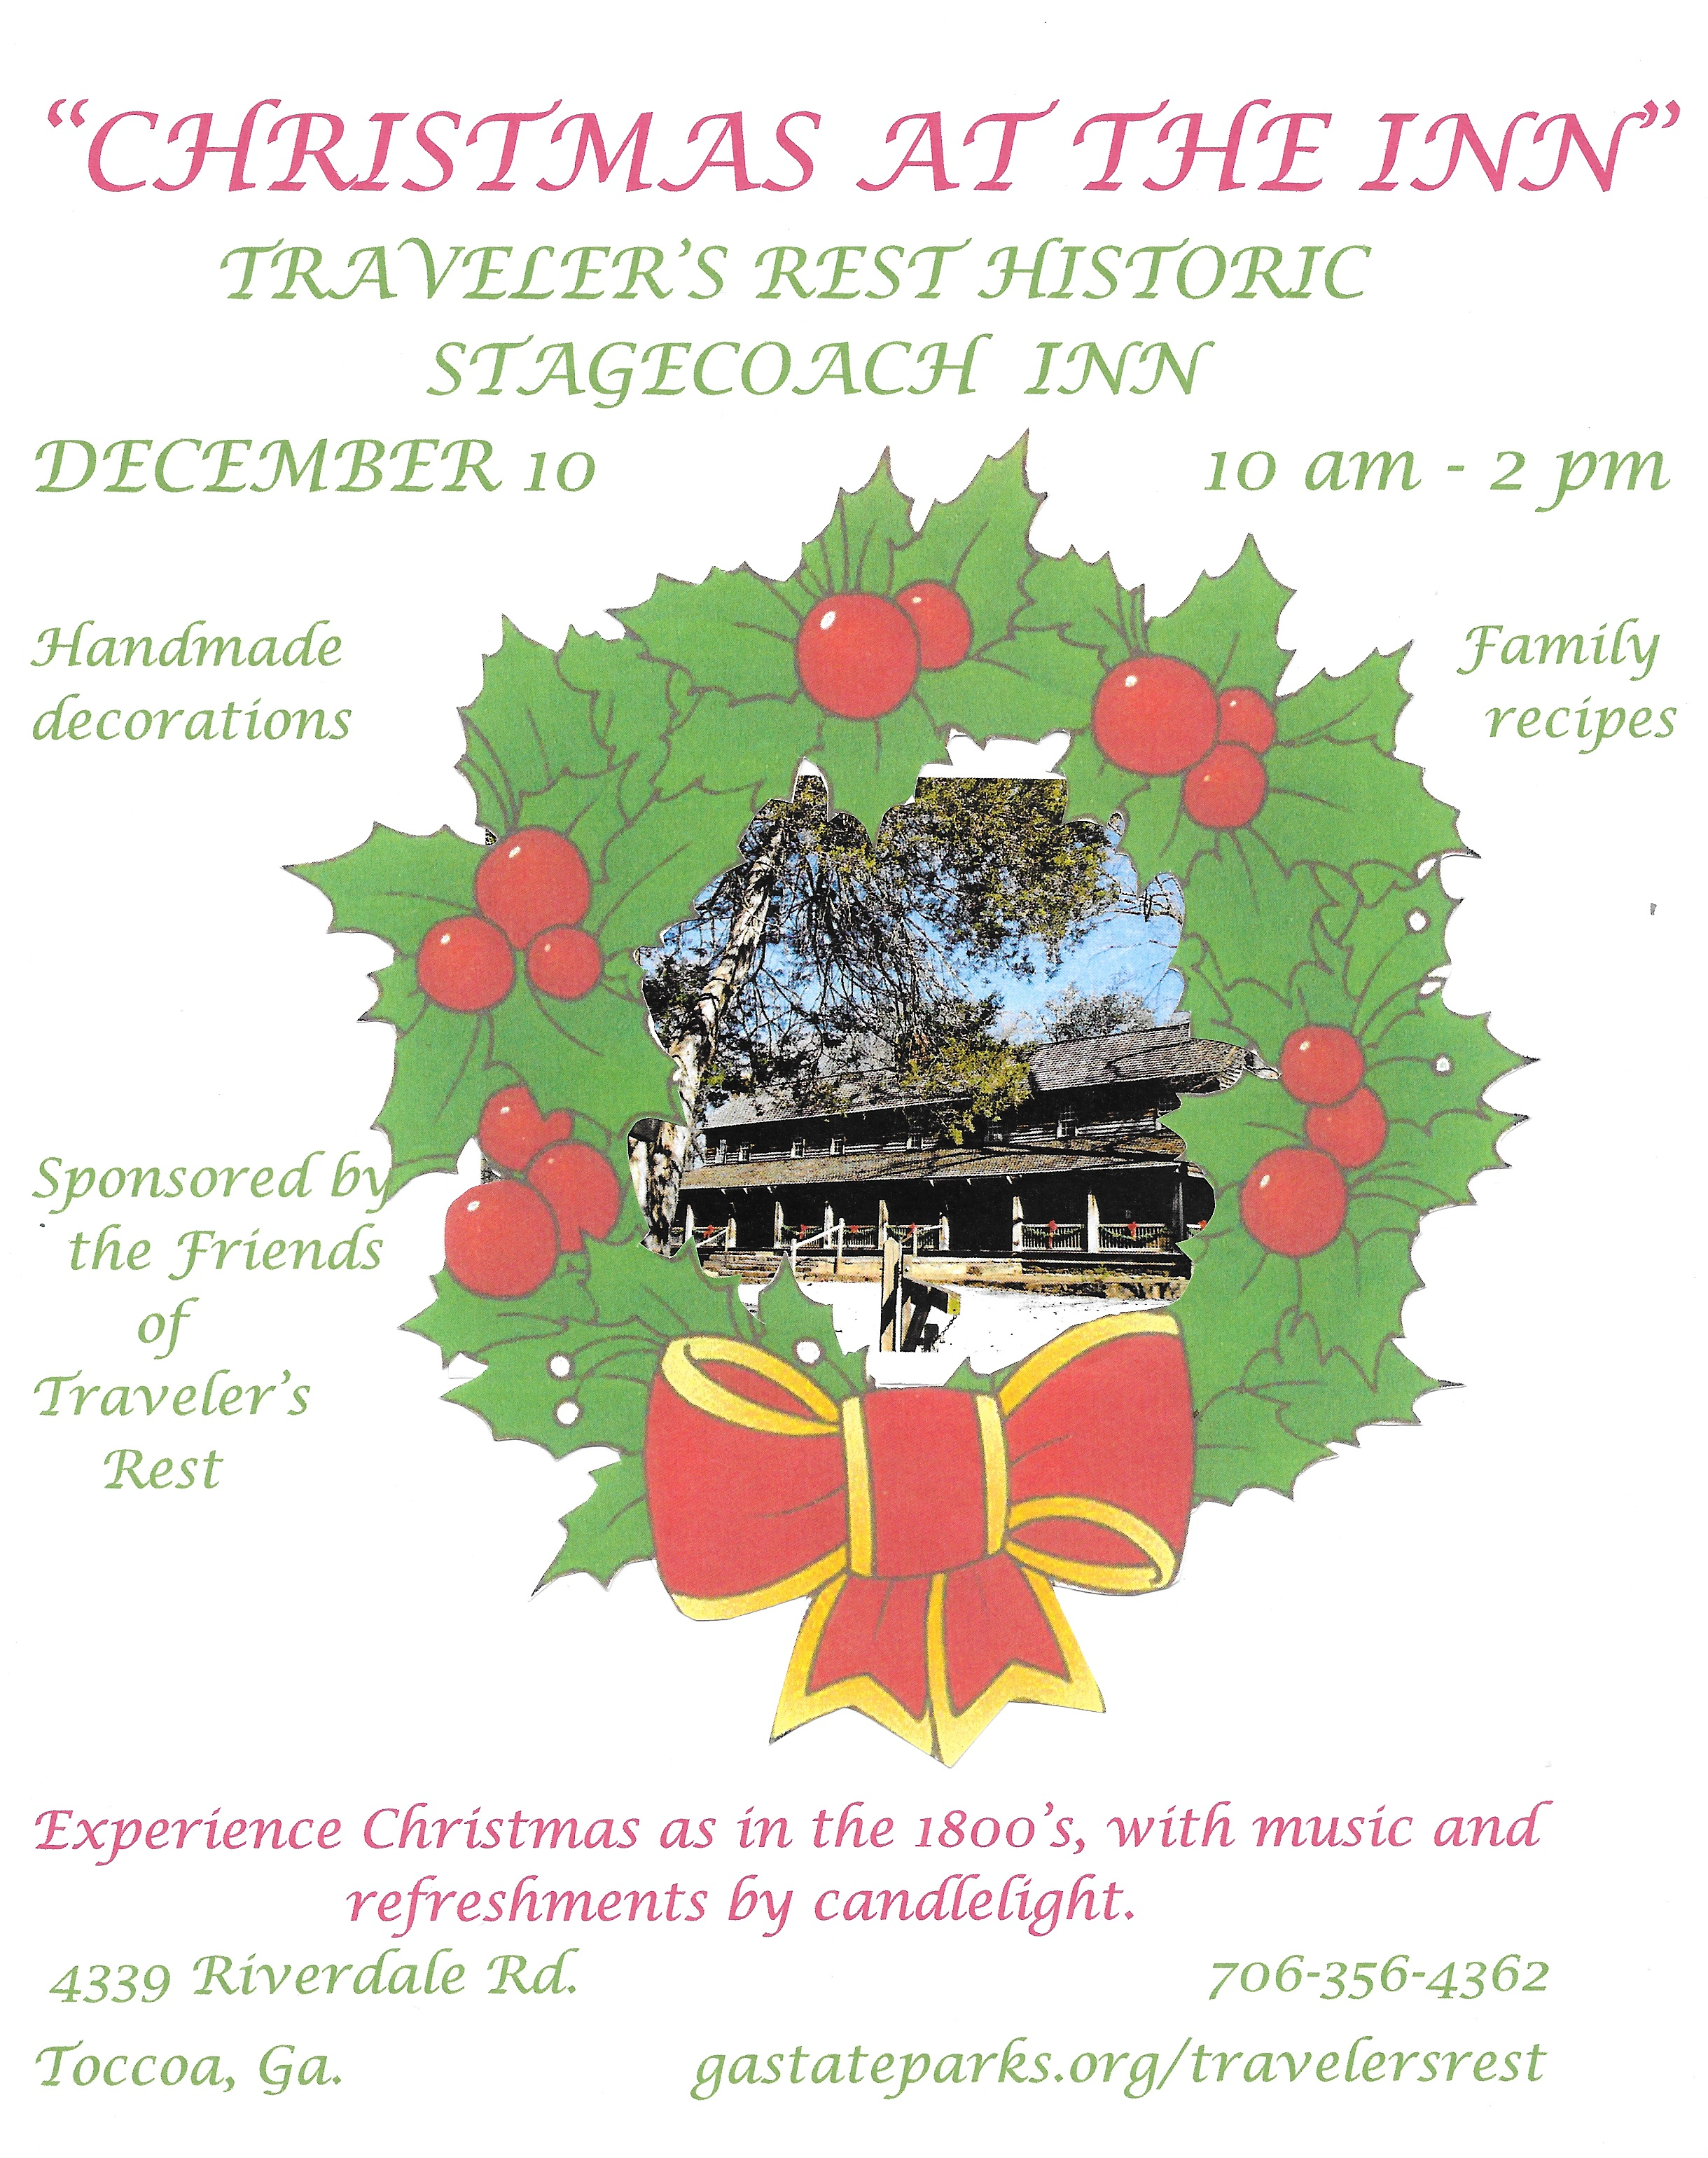 Trav.rest 20scan 202016 20christmas 20flier 20